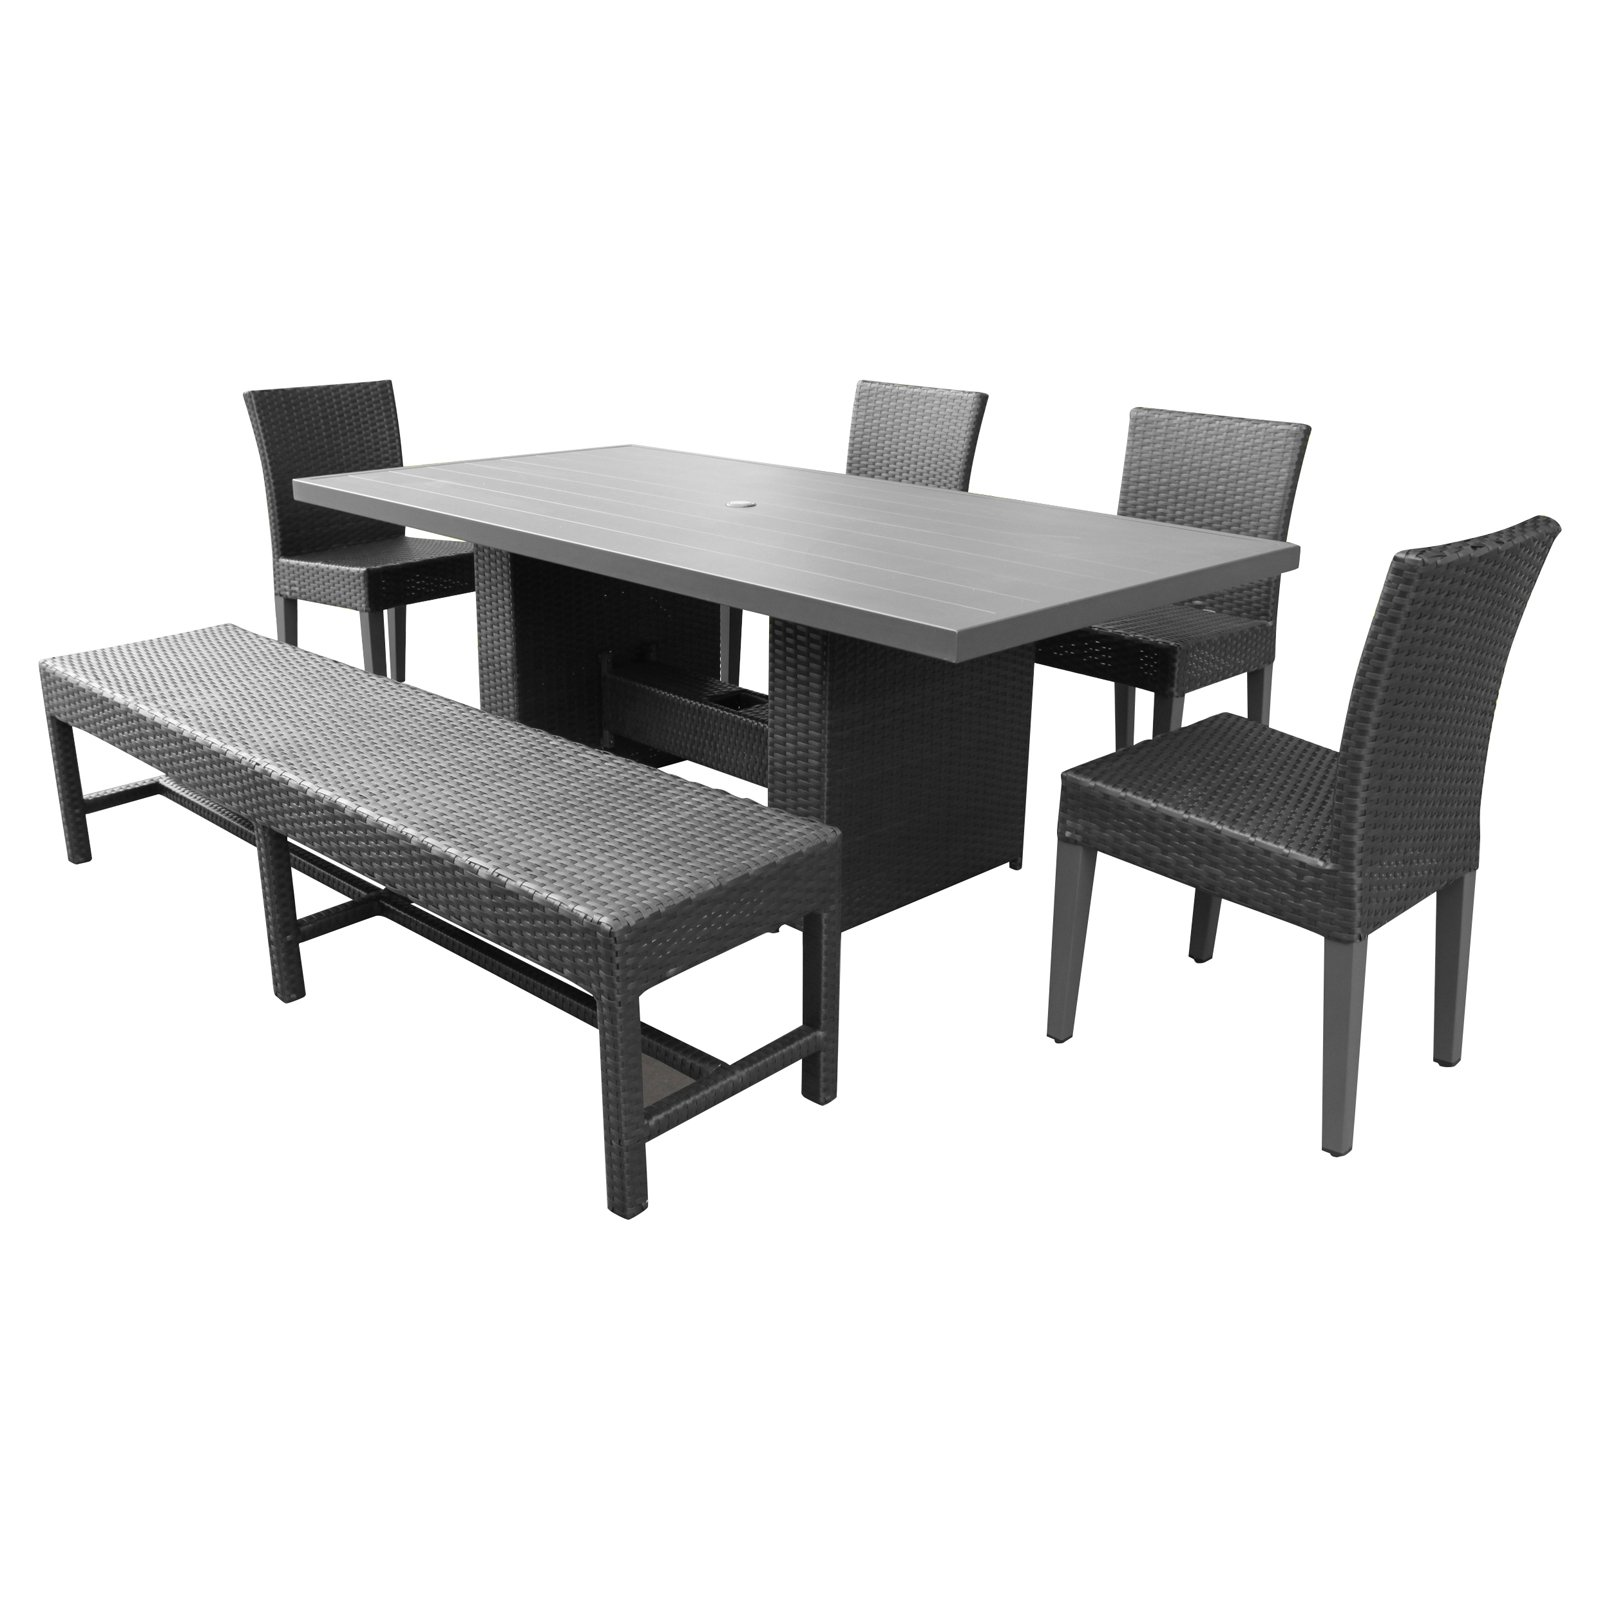 TK Classics Barbados Wicker Rectangular 6 Piece Patio Dining Set